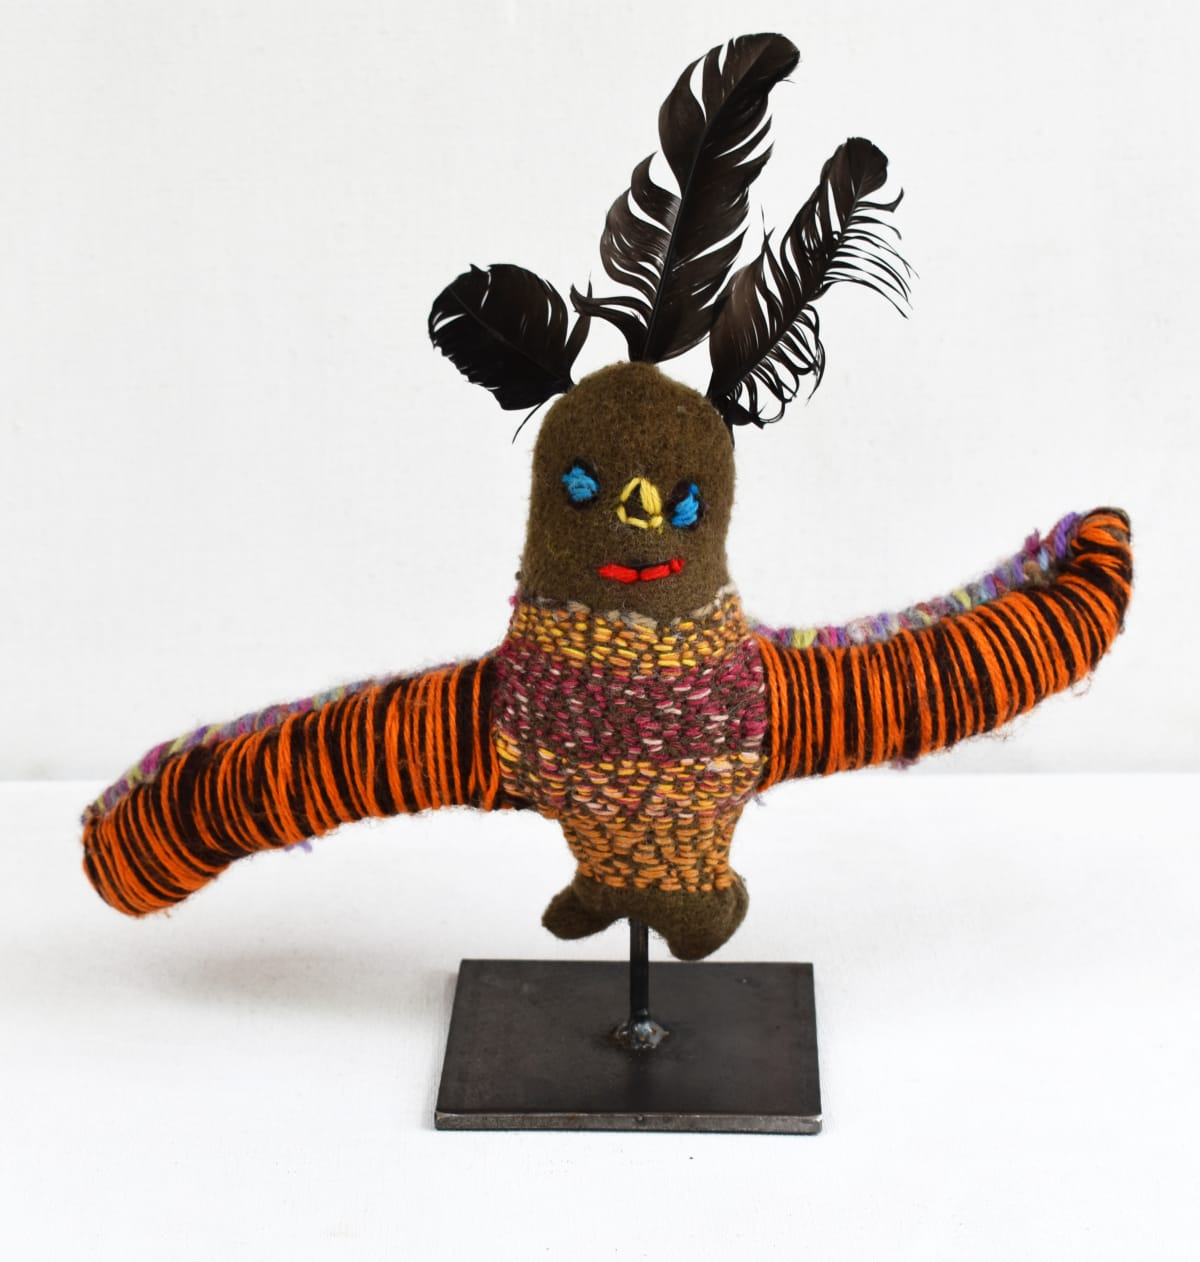 Rosabella Ryder Dancing Bird mixed media 25 x 25 x 6 cm